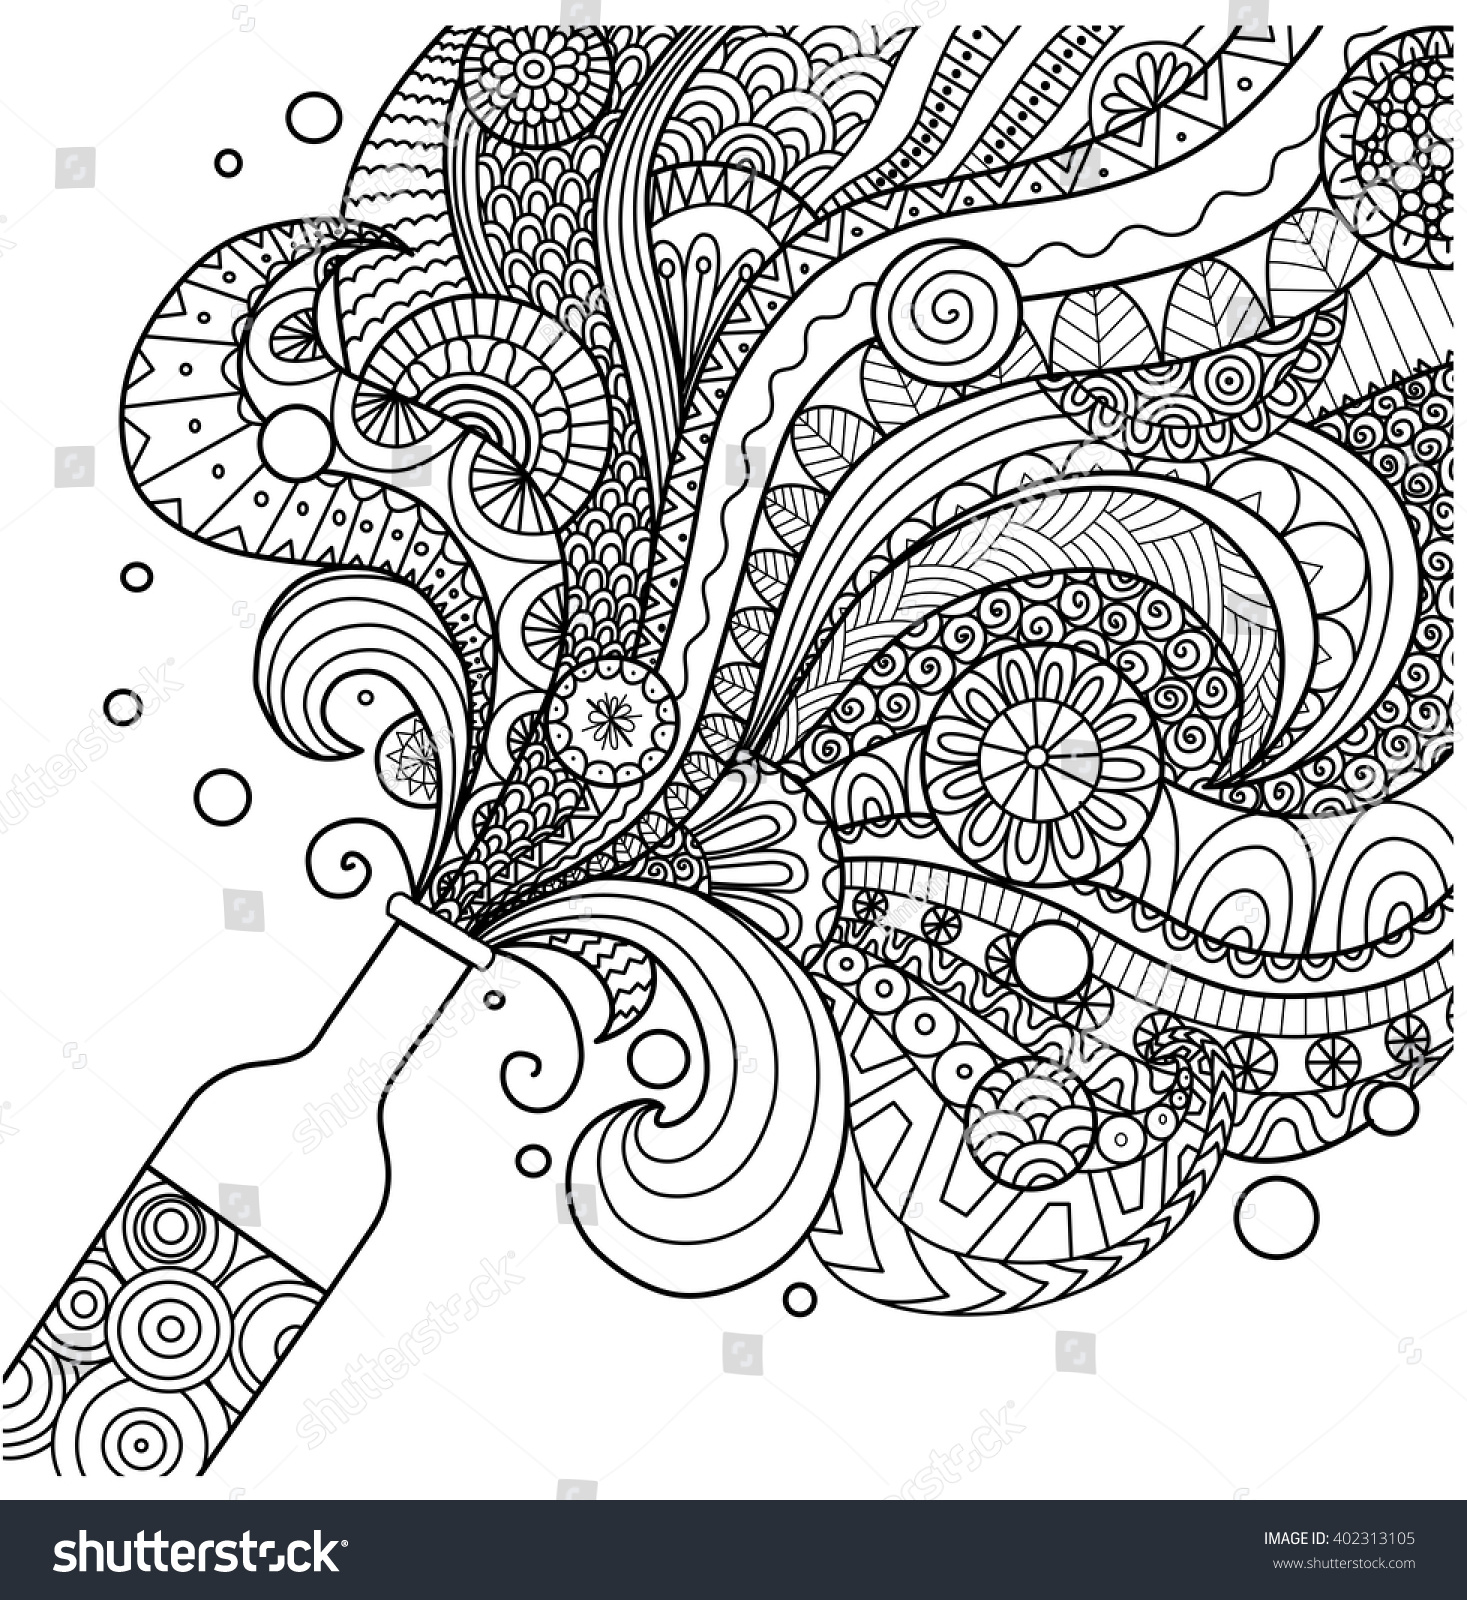 Line Art Card Design : Champagne bottle line art design coloring stock vector